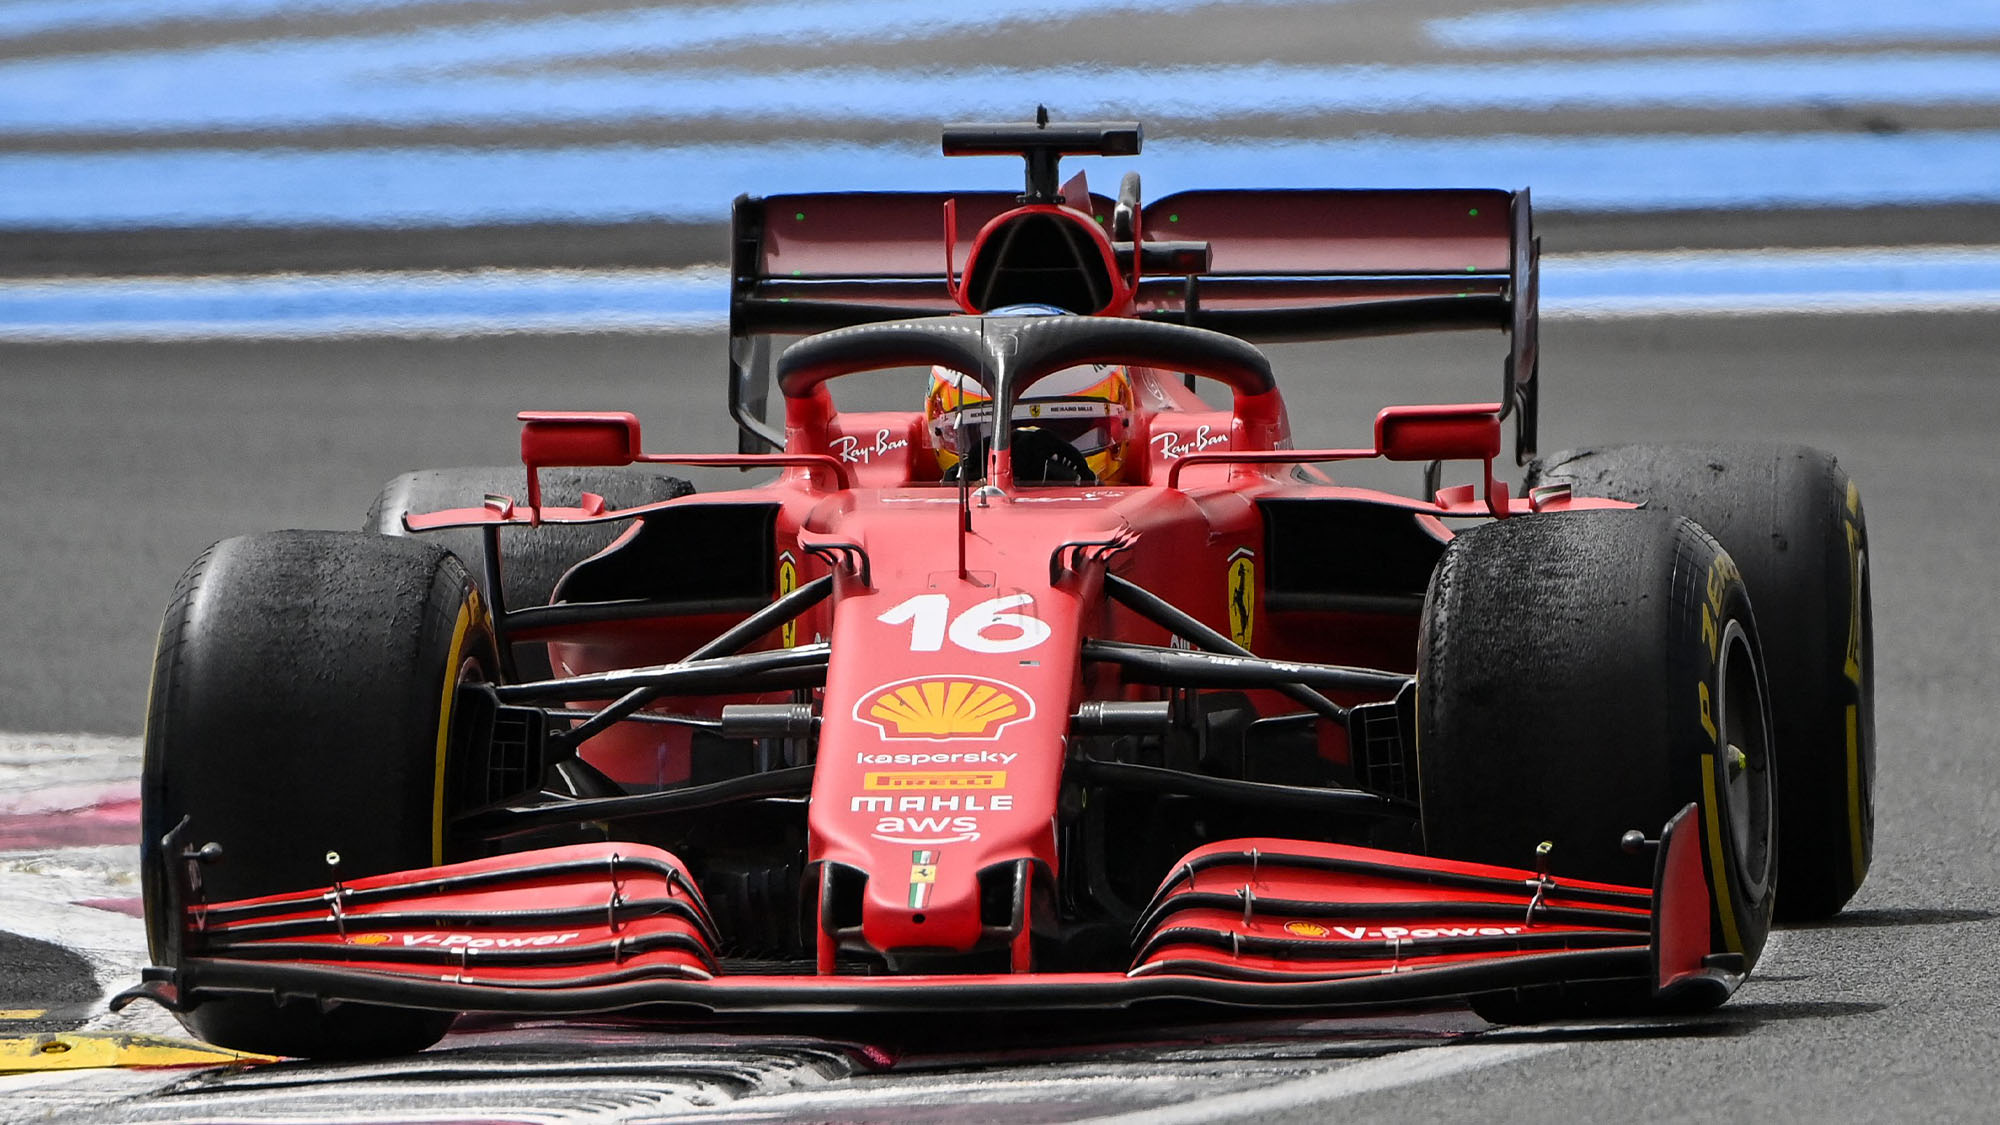 Ferrari's Monegasque driver Charles Leclerc drives during the French Formula One Grand Prix at the Circuit Paul-Ricard in Le Castellet, southern France, on June 20, 2021. (Photo by CHRISTOPHE SIMON / AFP) (Photo by CHRISTOPHE SIMON/AFP via Getty Images)